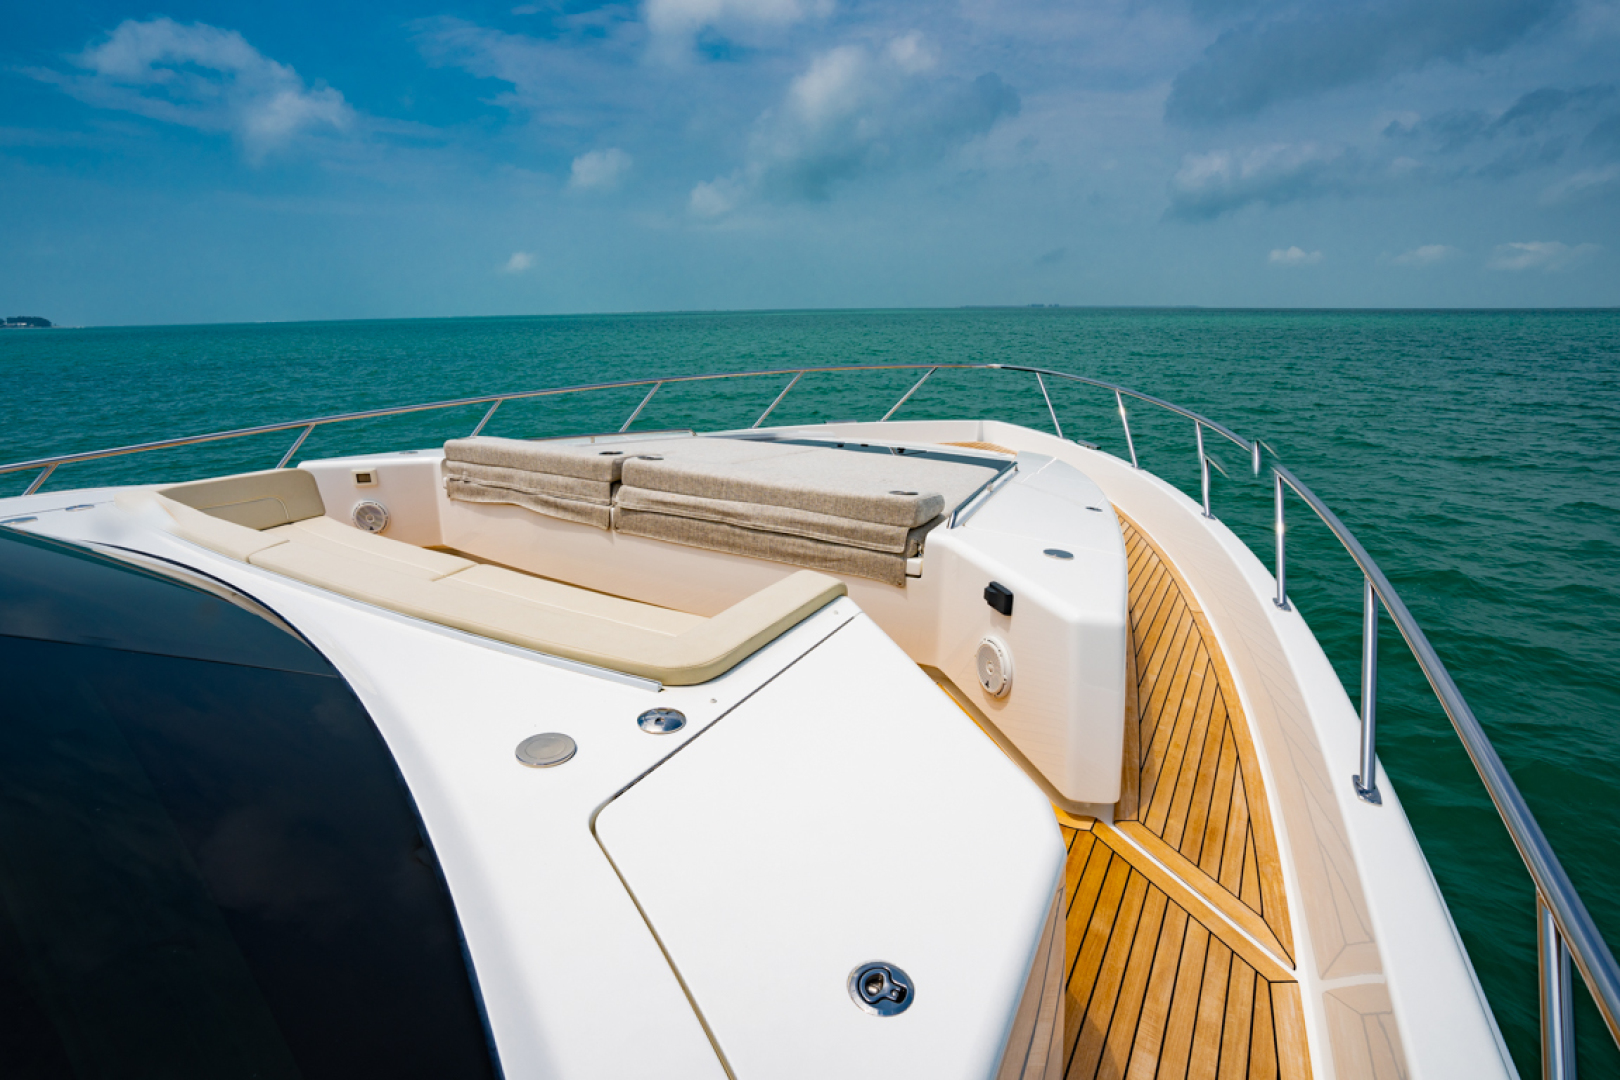 Viking-82 Cockpit MY 2019-Make It Happen Sanibel -Florida-United States-Viking 82CPMY Make It Happen  Walkway-1378569 | Thumbnail